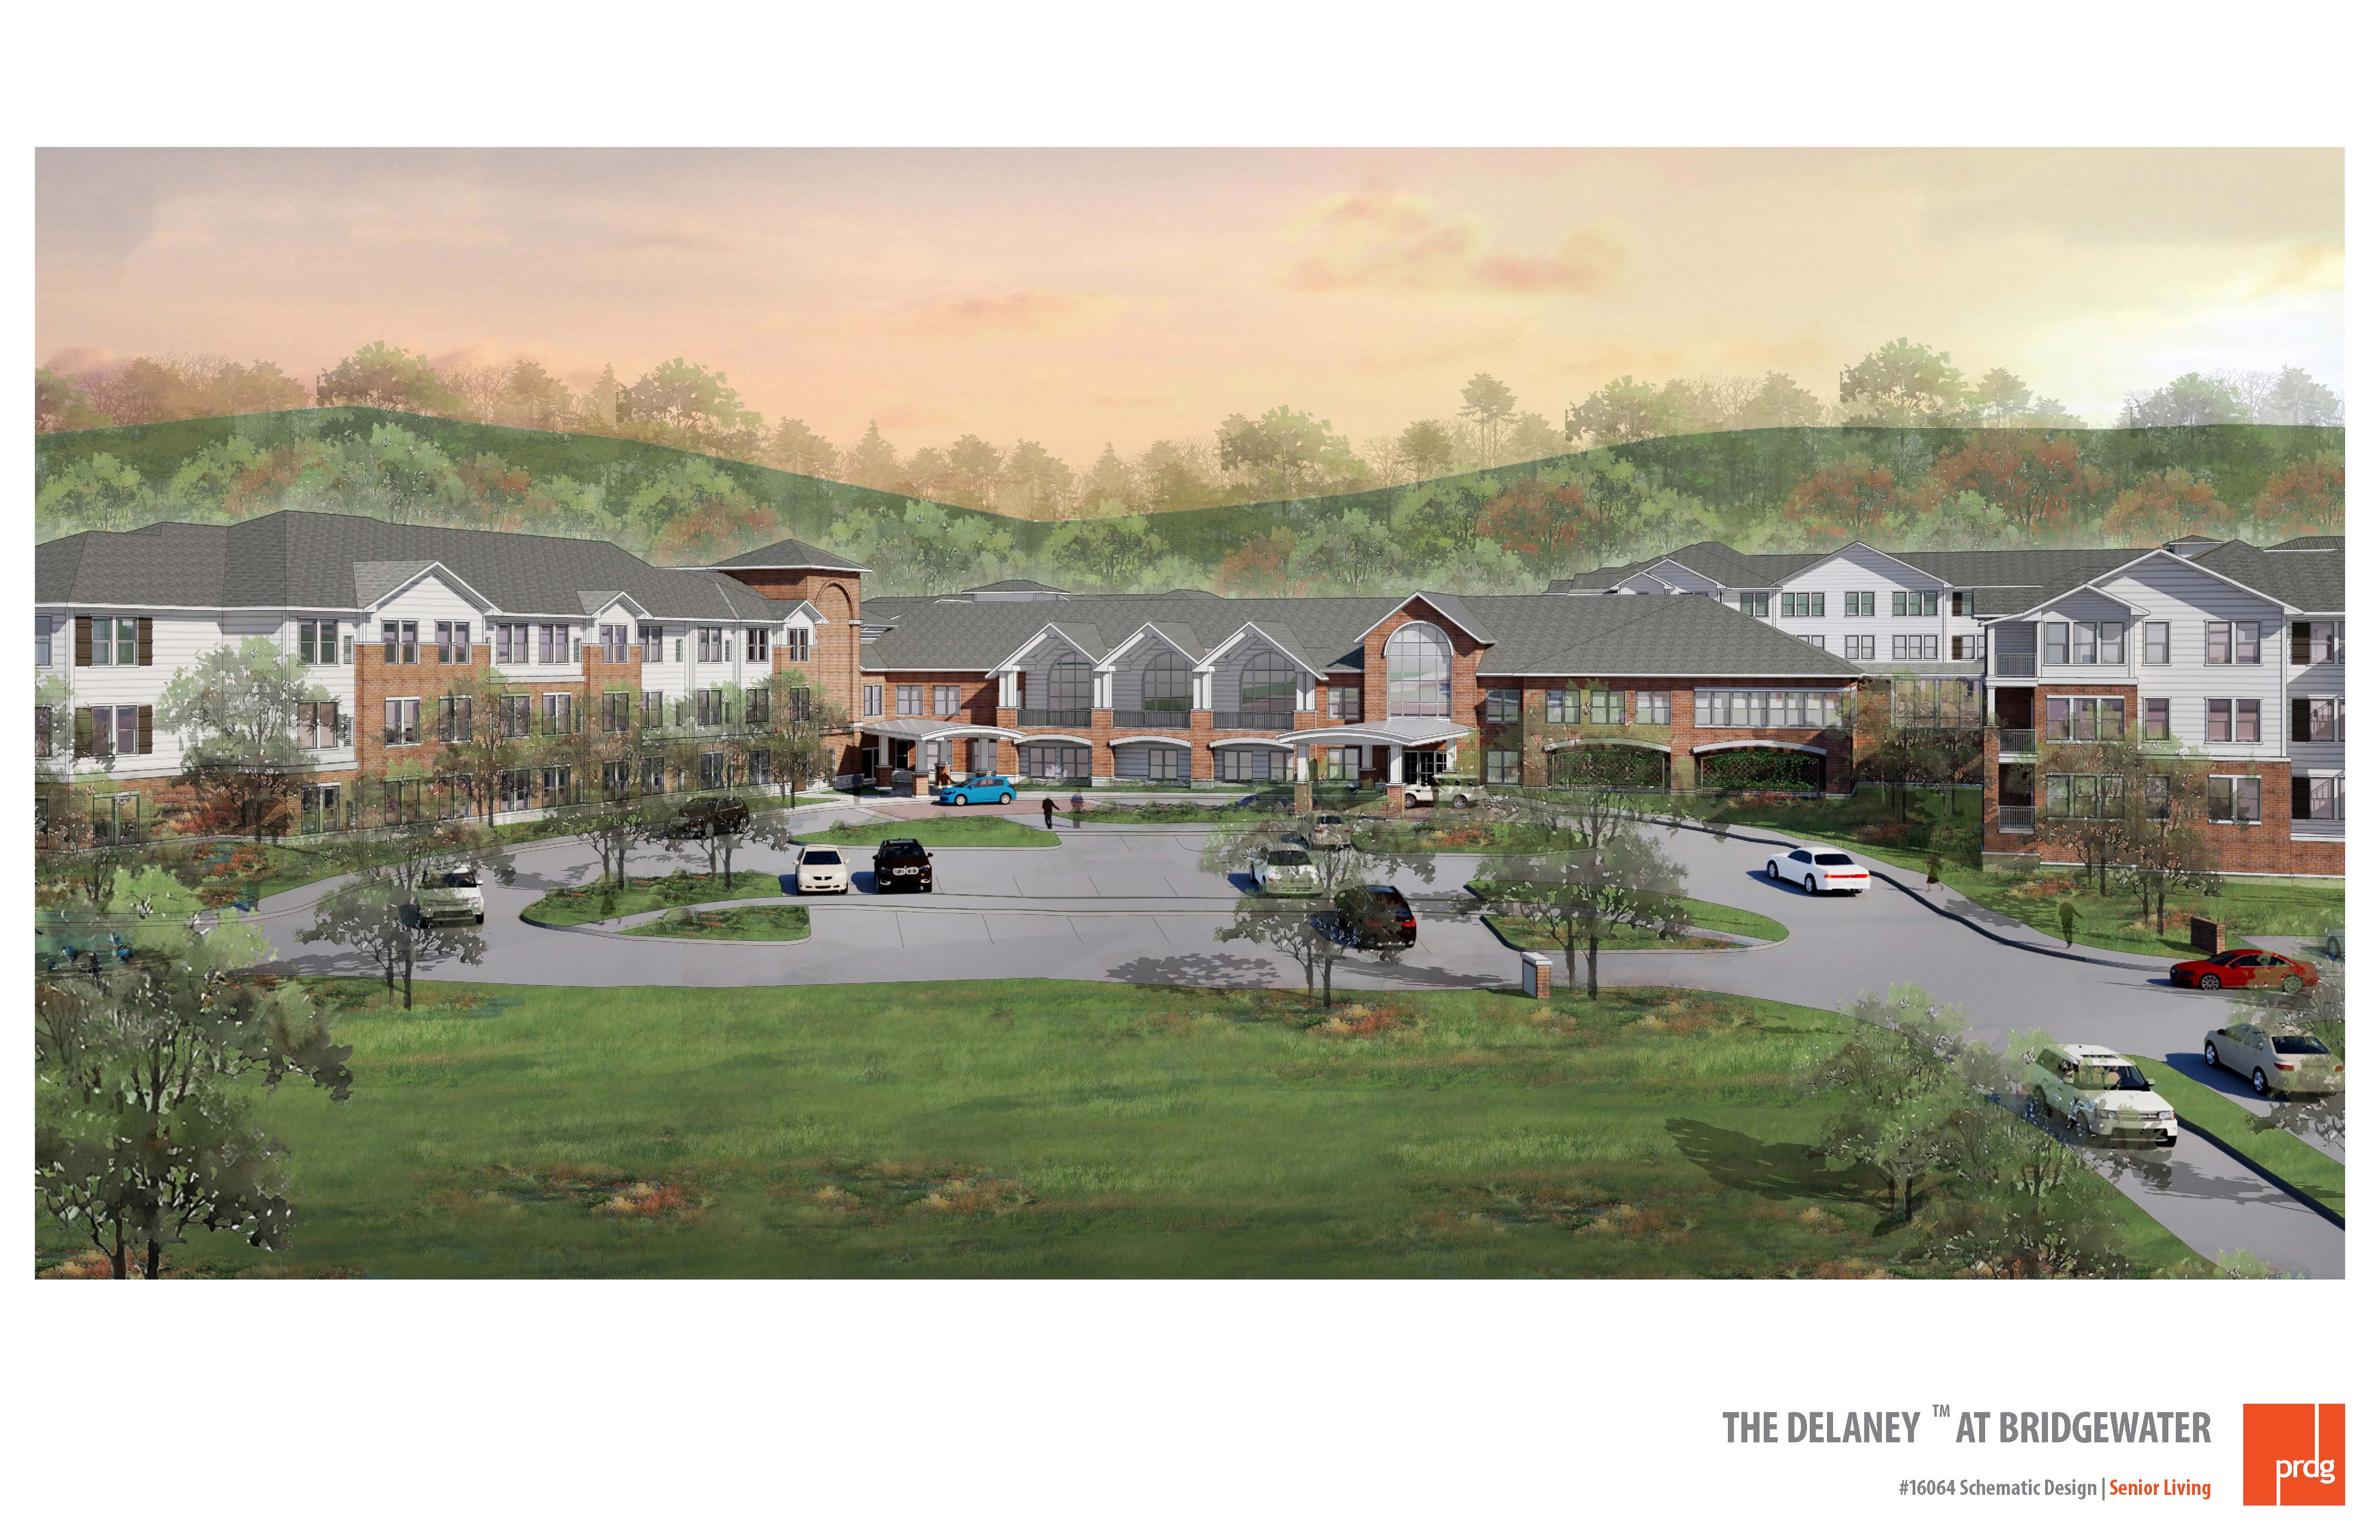 LCS Announces New Senior Living Community in Bridgewater, New Jersey